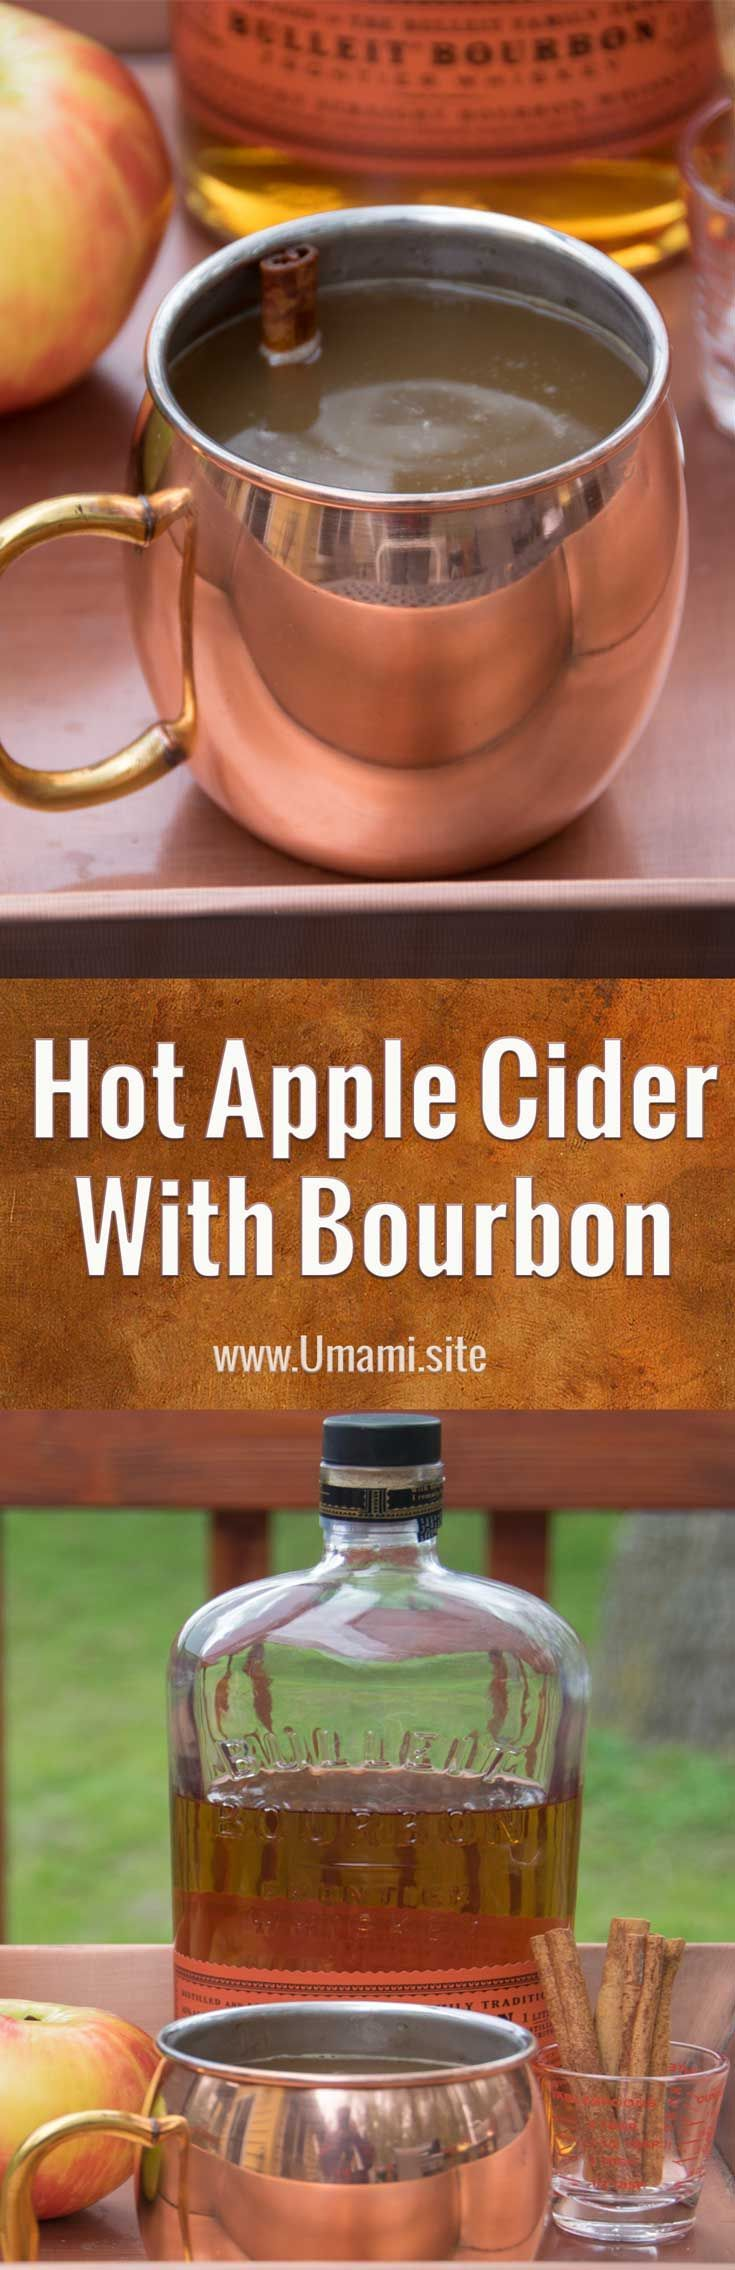 This Hot Apple Cider with Bourbon recipes is one of our favorite pick me ups for cool fall days.  All it takes to make this recipe is some fresh pressed apple cider, a touch of cinnamon, and a good shot of bourbon.